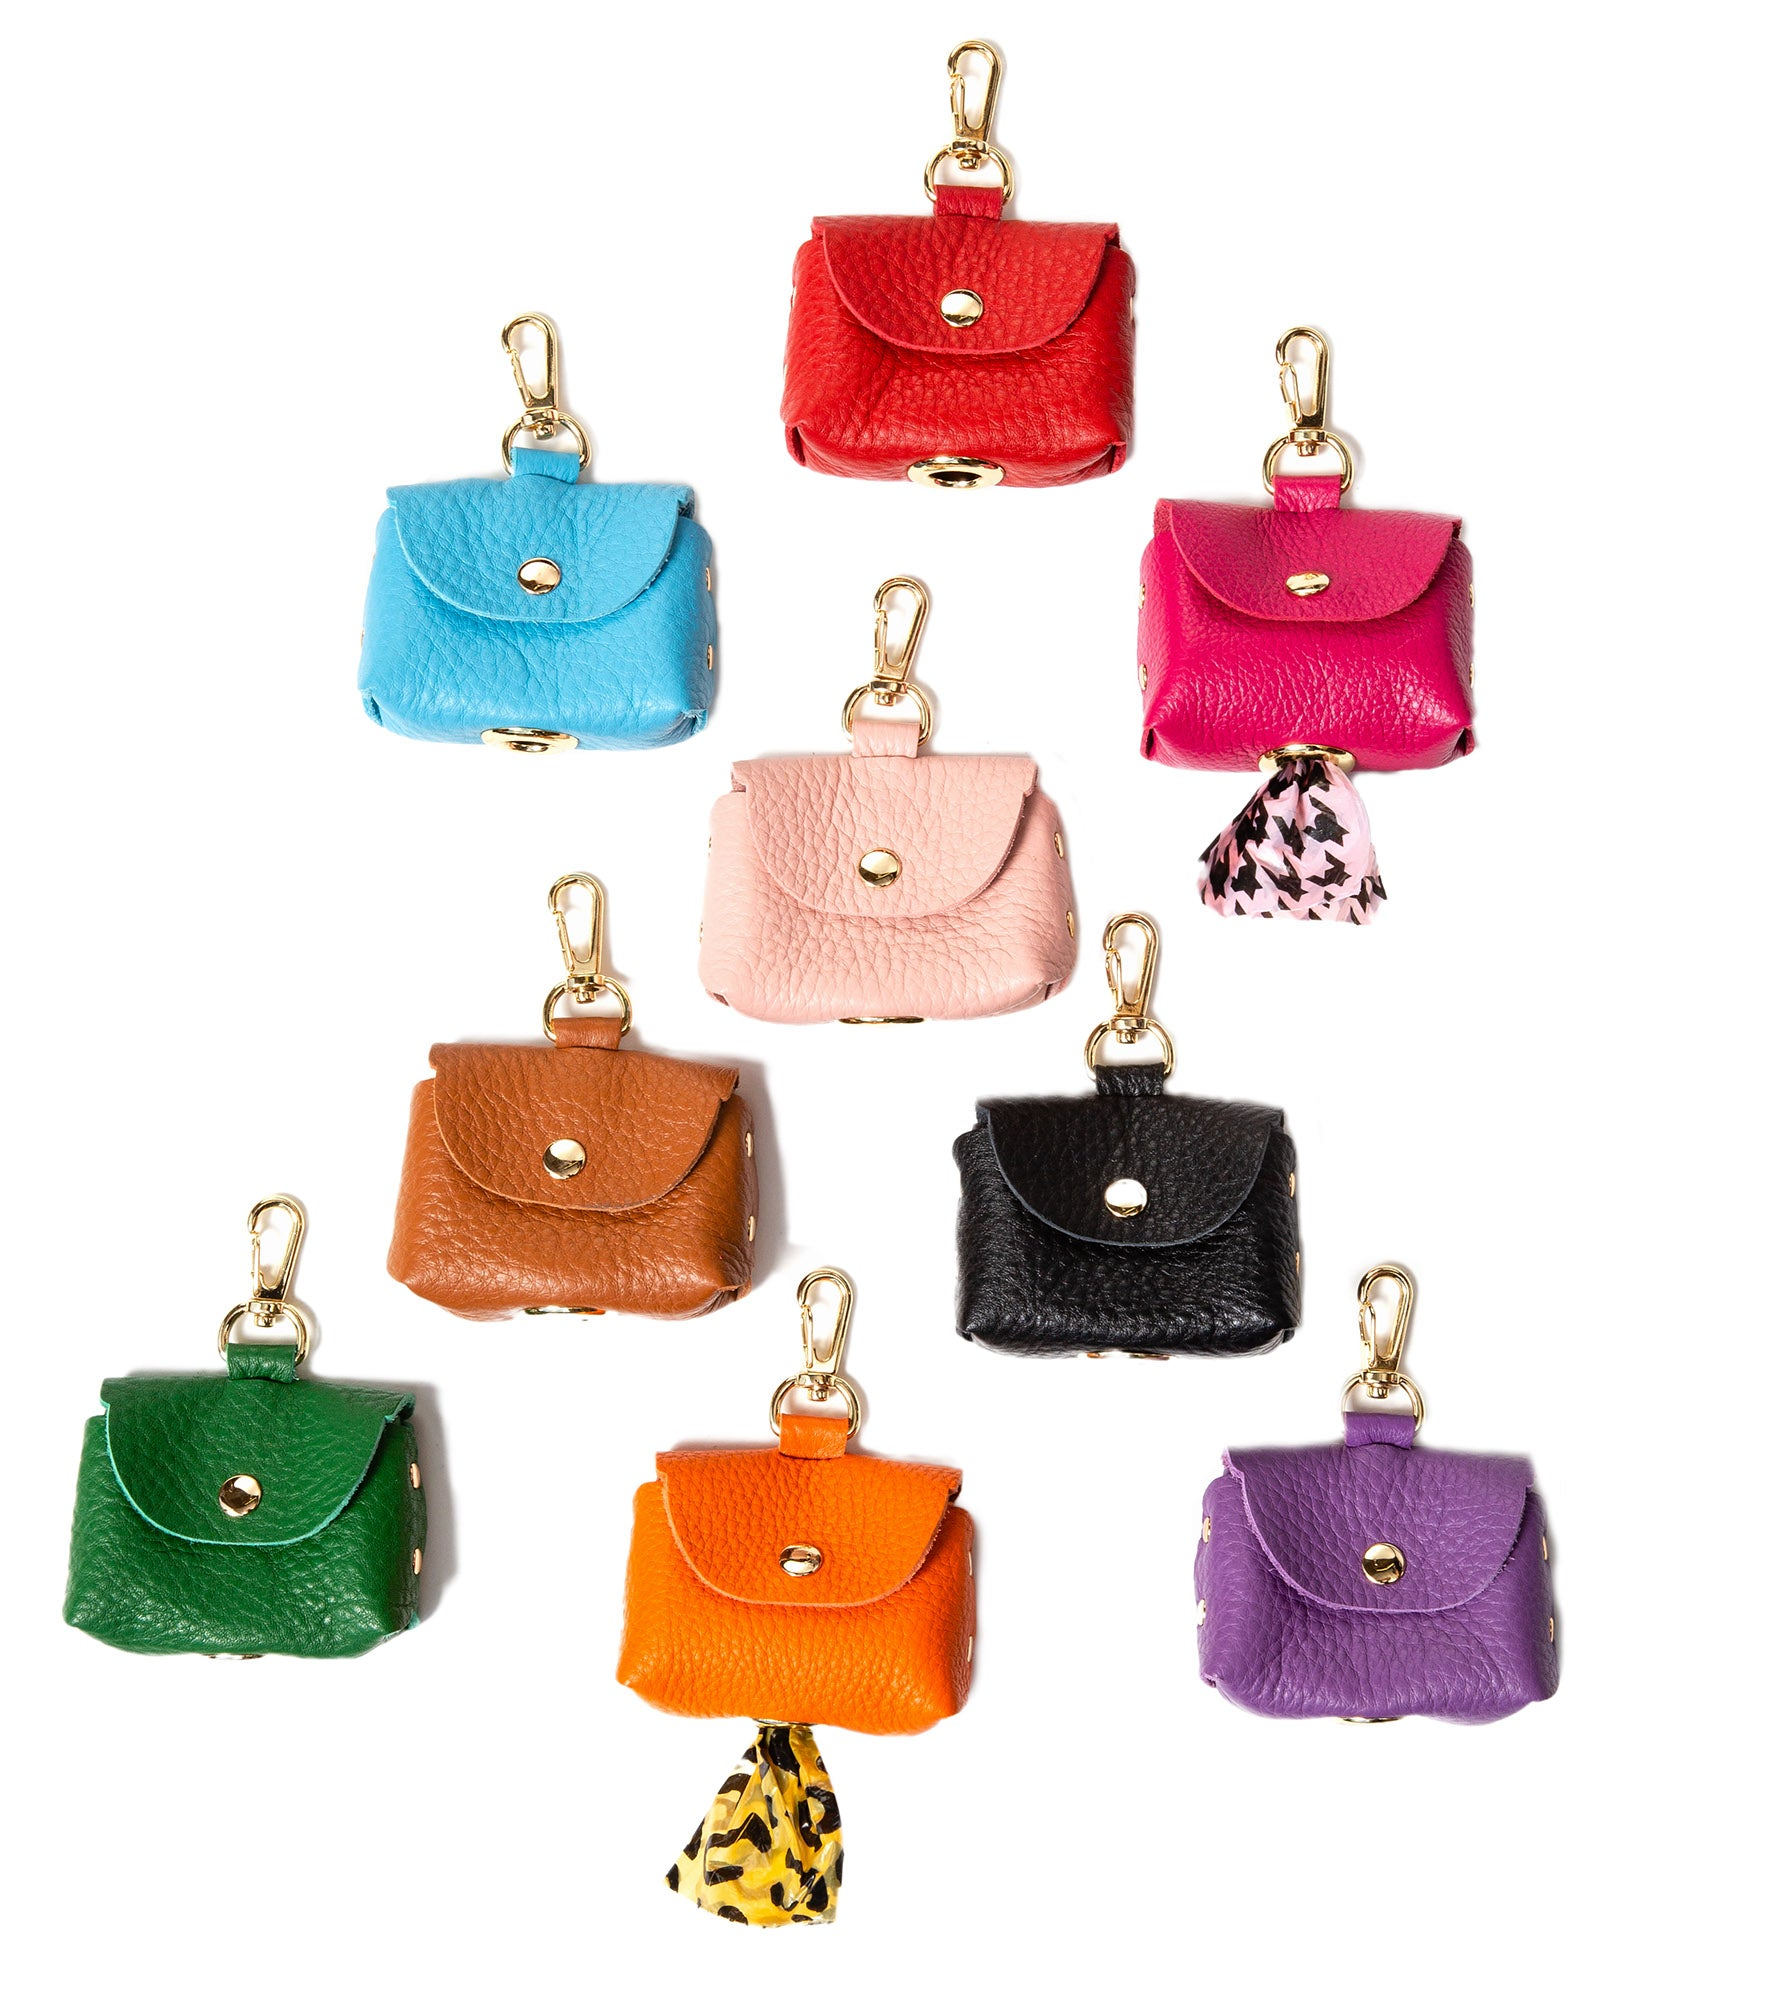 Fine leather Bag Holders - 6 Color Options - Poop Bag Holder